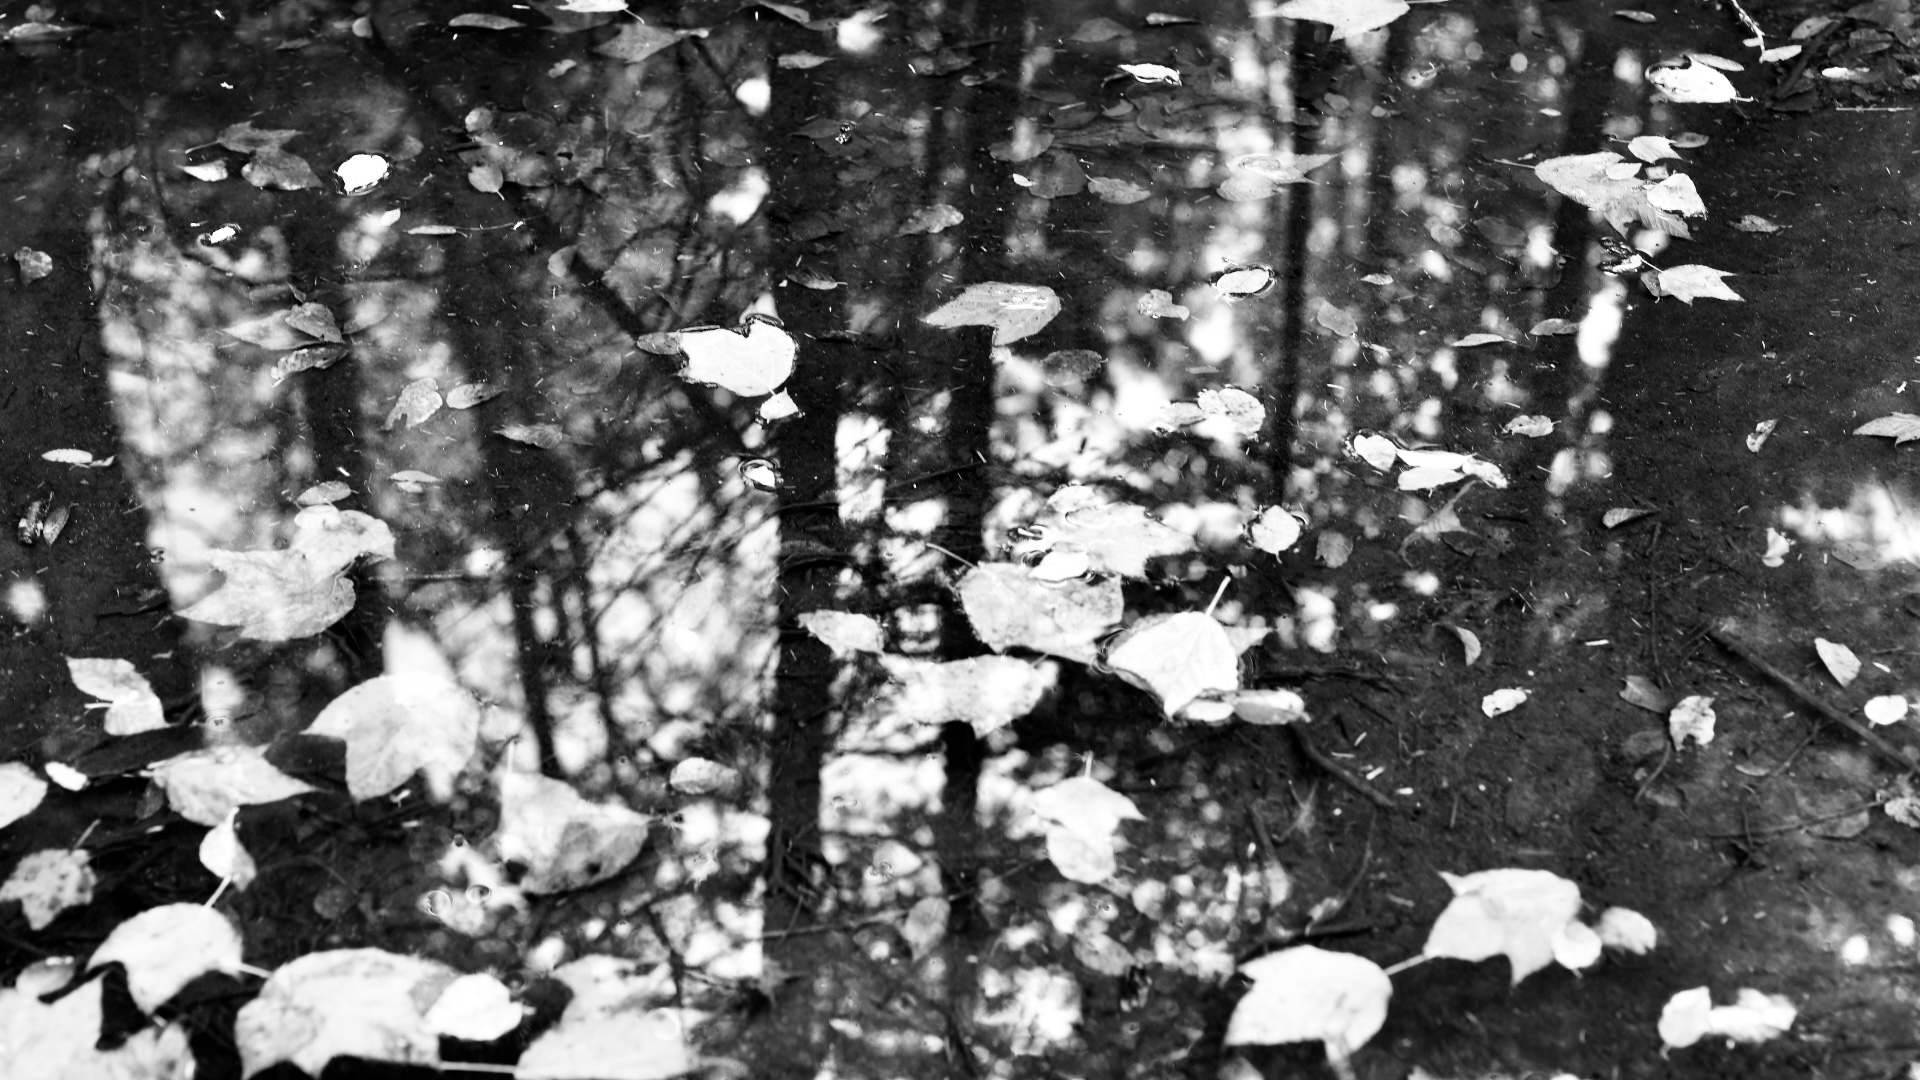 Black and white image of many leaves floating in water with tree reflections. 2021. Taryn Okesson. Digital Photography. White Mountain National Forest, New Hampshire.